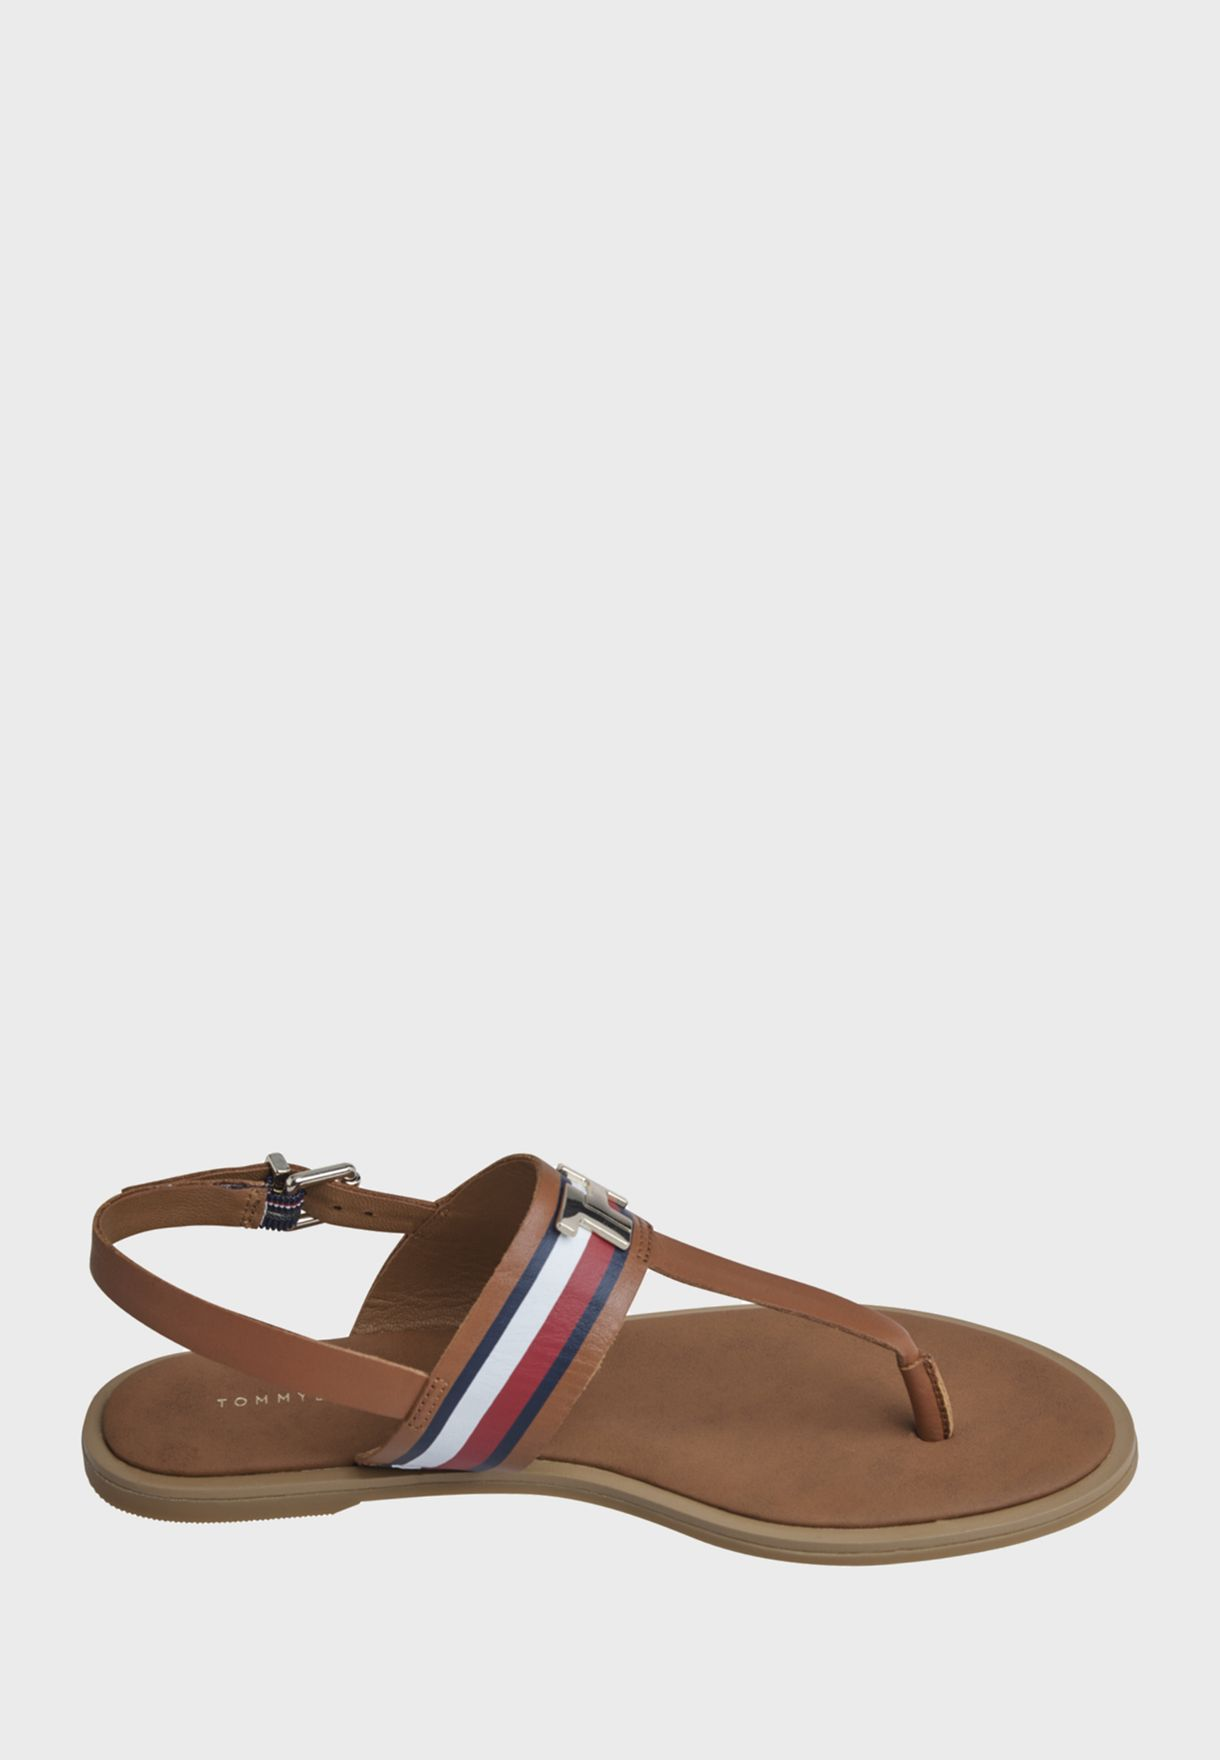 Corporate Leather Flat Sandal - GU9